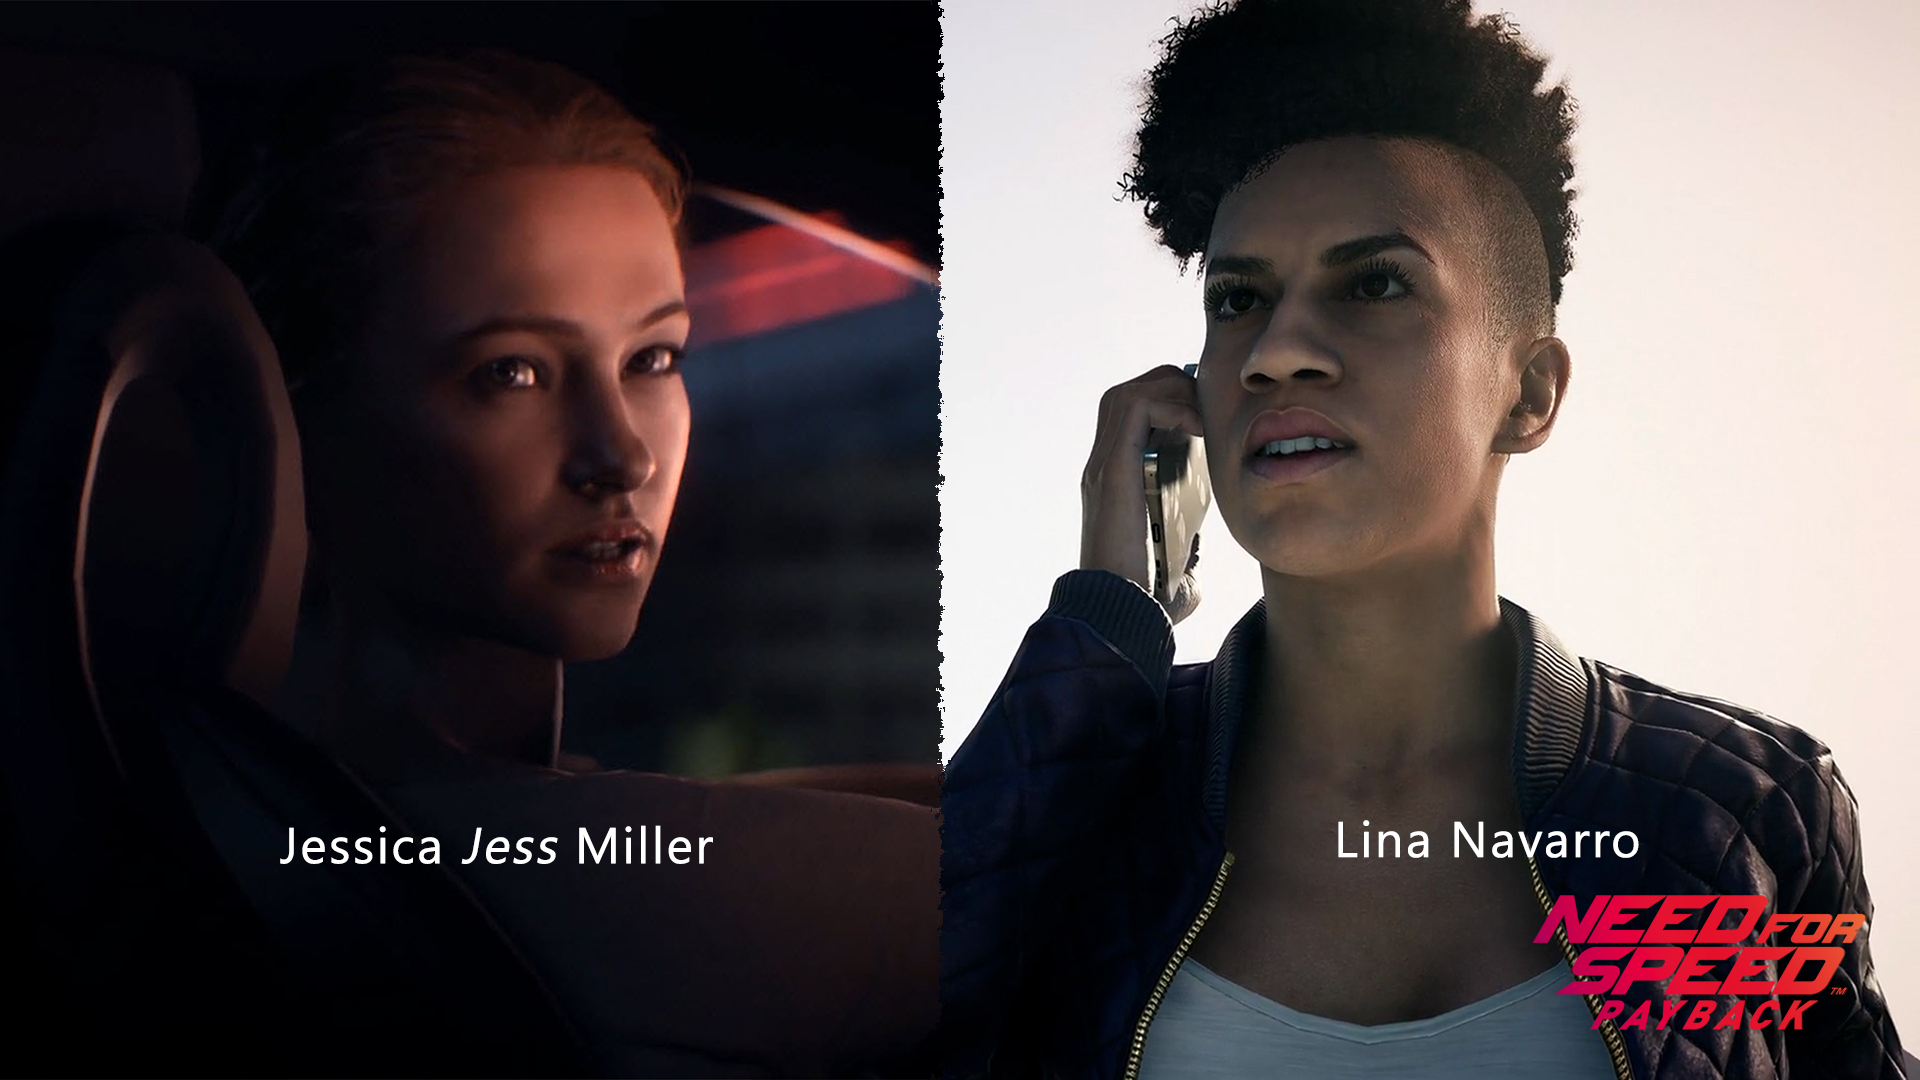 NFS - Need for Speed Payback - Jessica Jess Miller - Lina Navarro